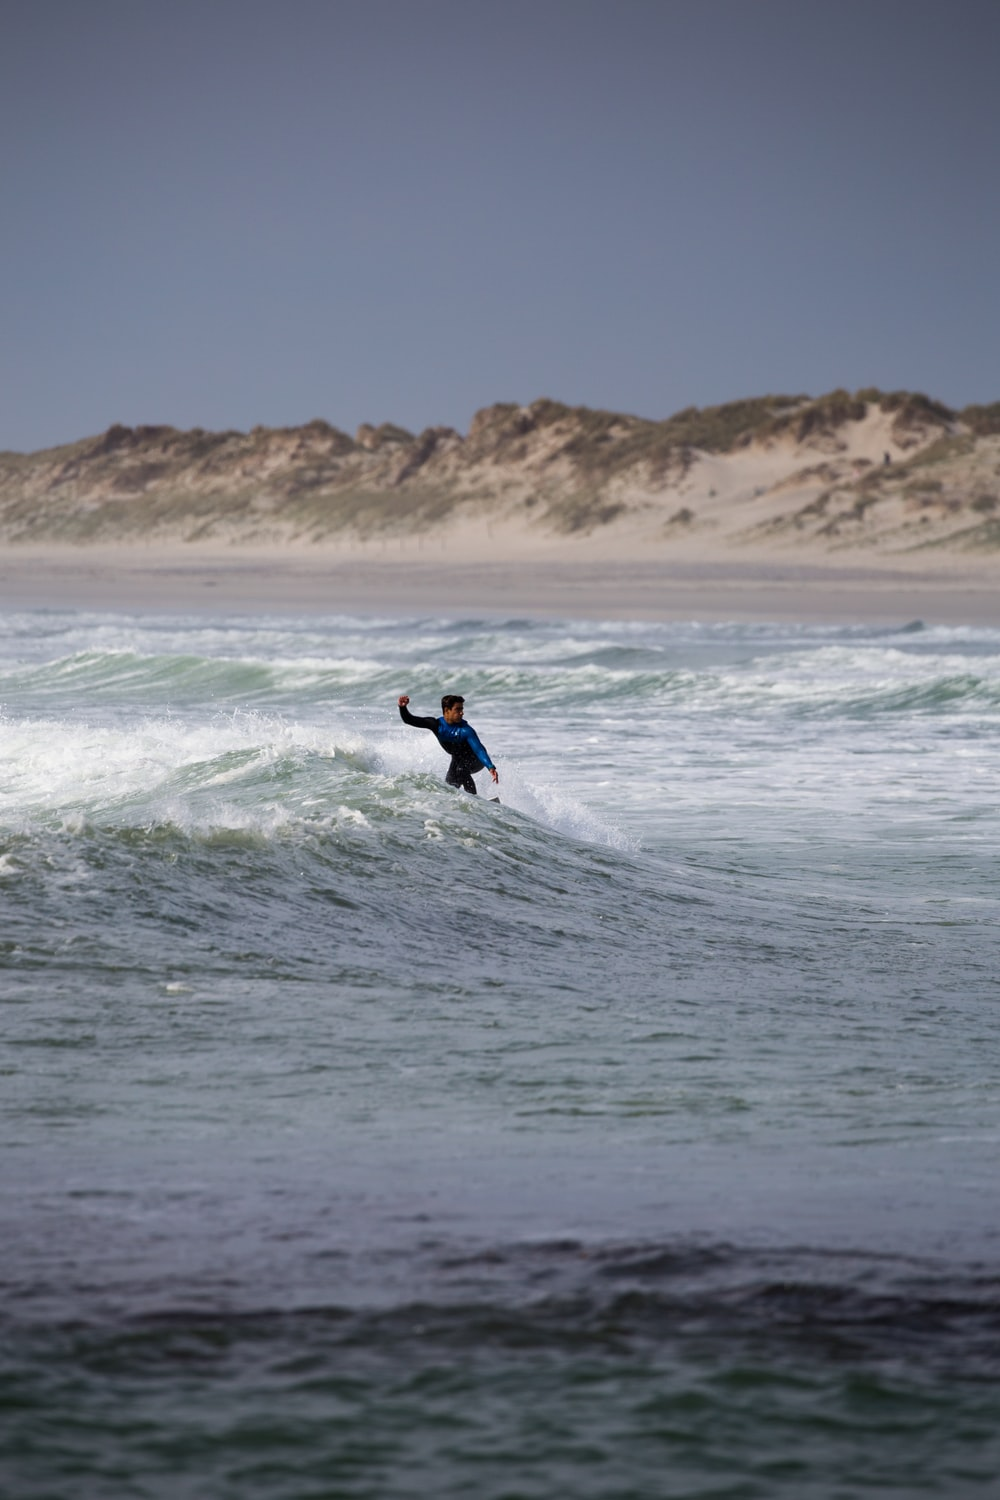 surfer riding the waves under grey sky